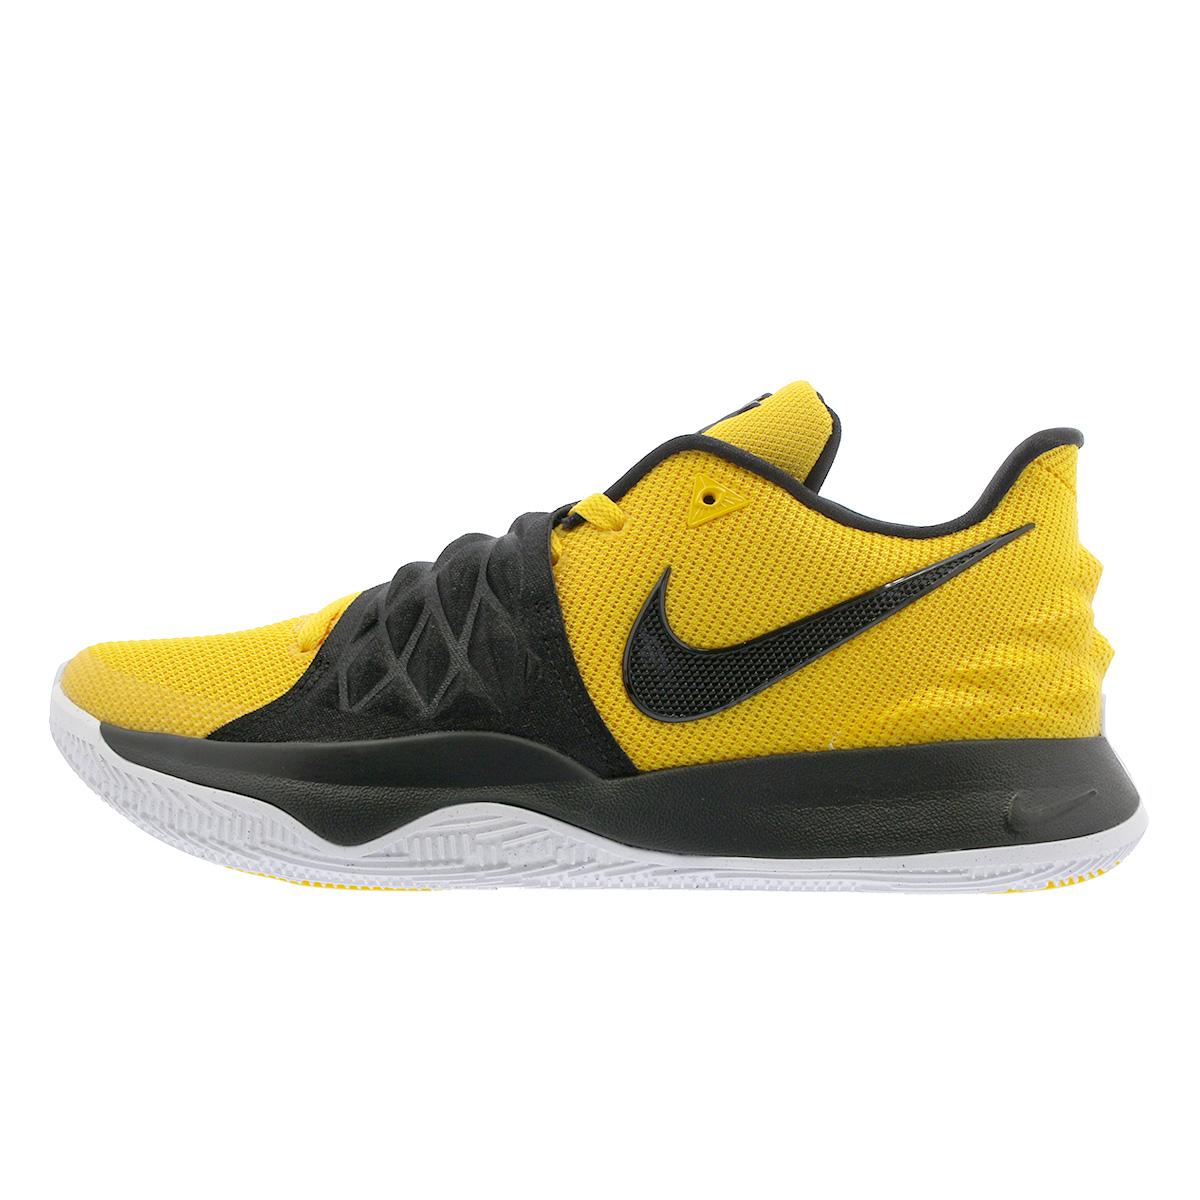 quality design 69c94 464cd NIKE KYRIE 4 LOW Nike chi Lee 4 low AMARILLO/BLACK ao8979-700